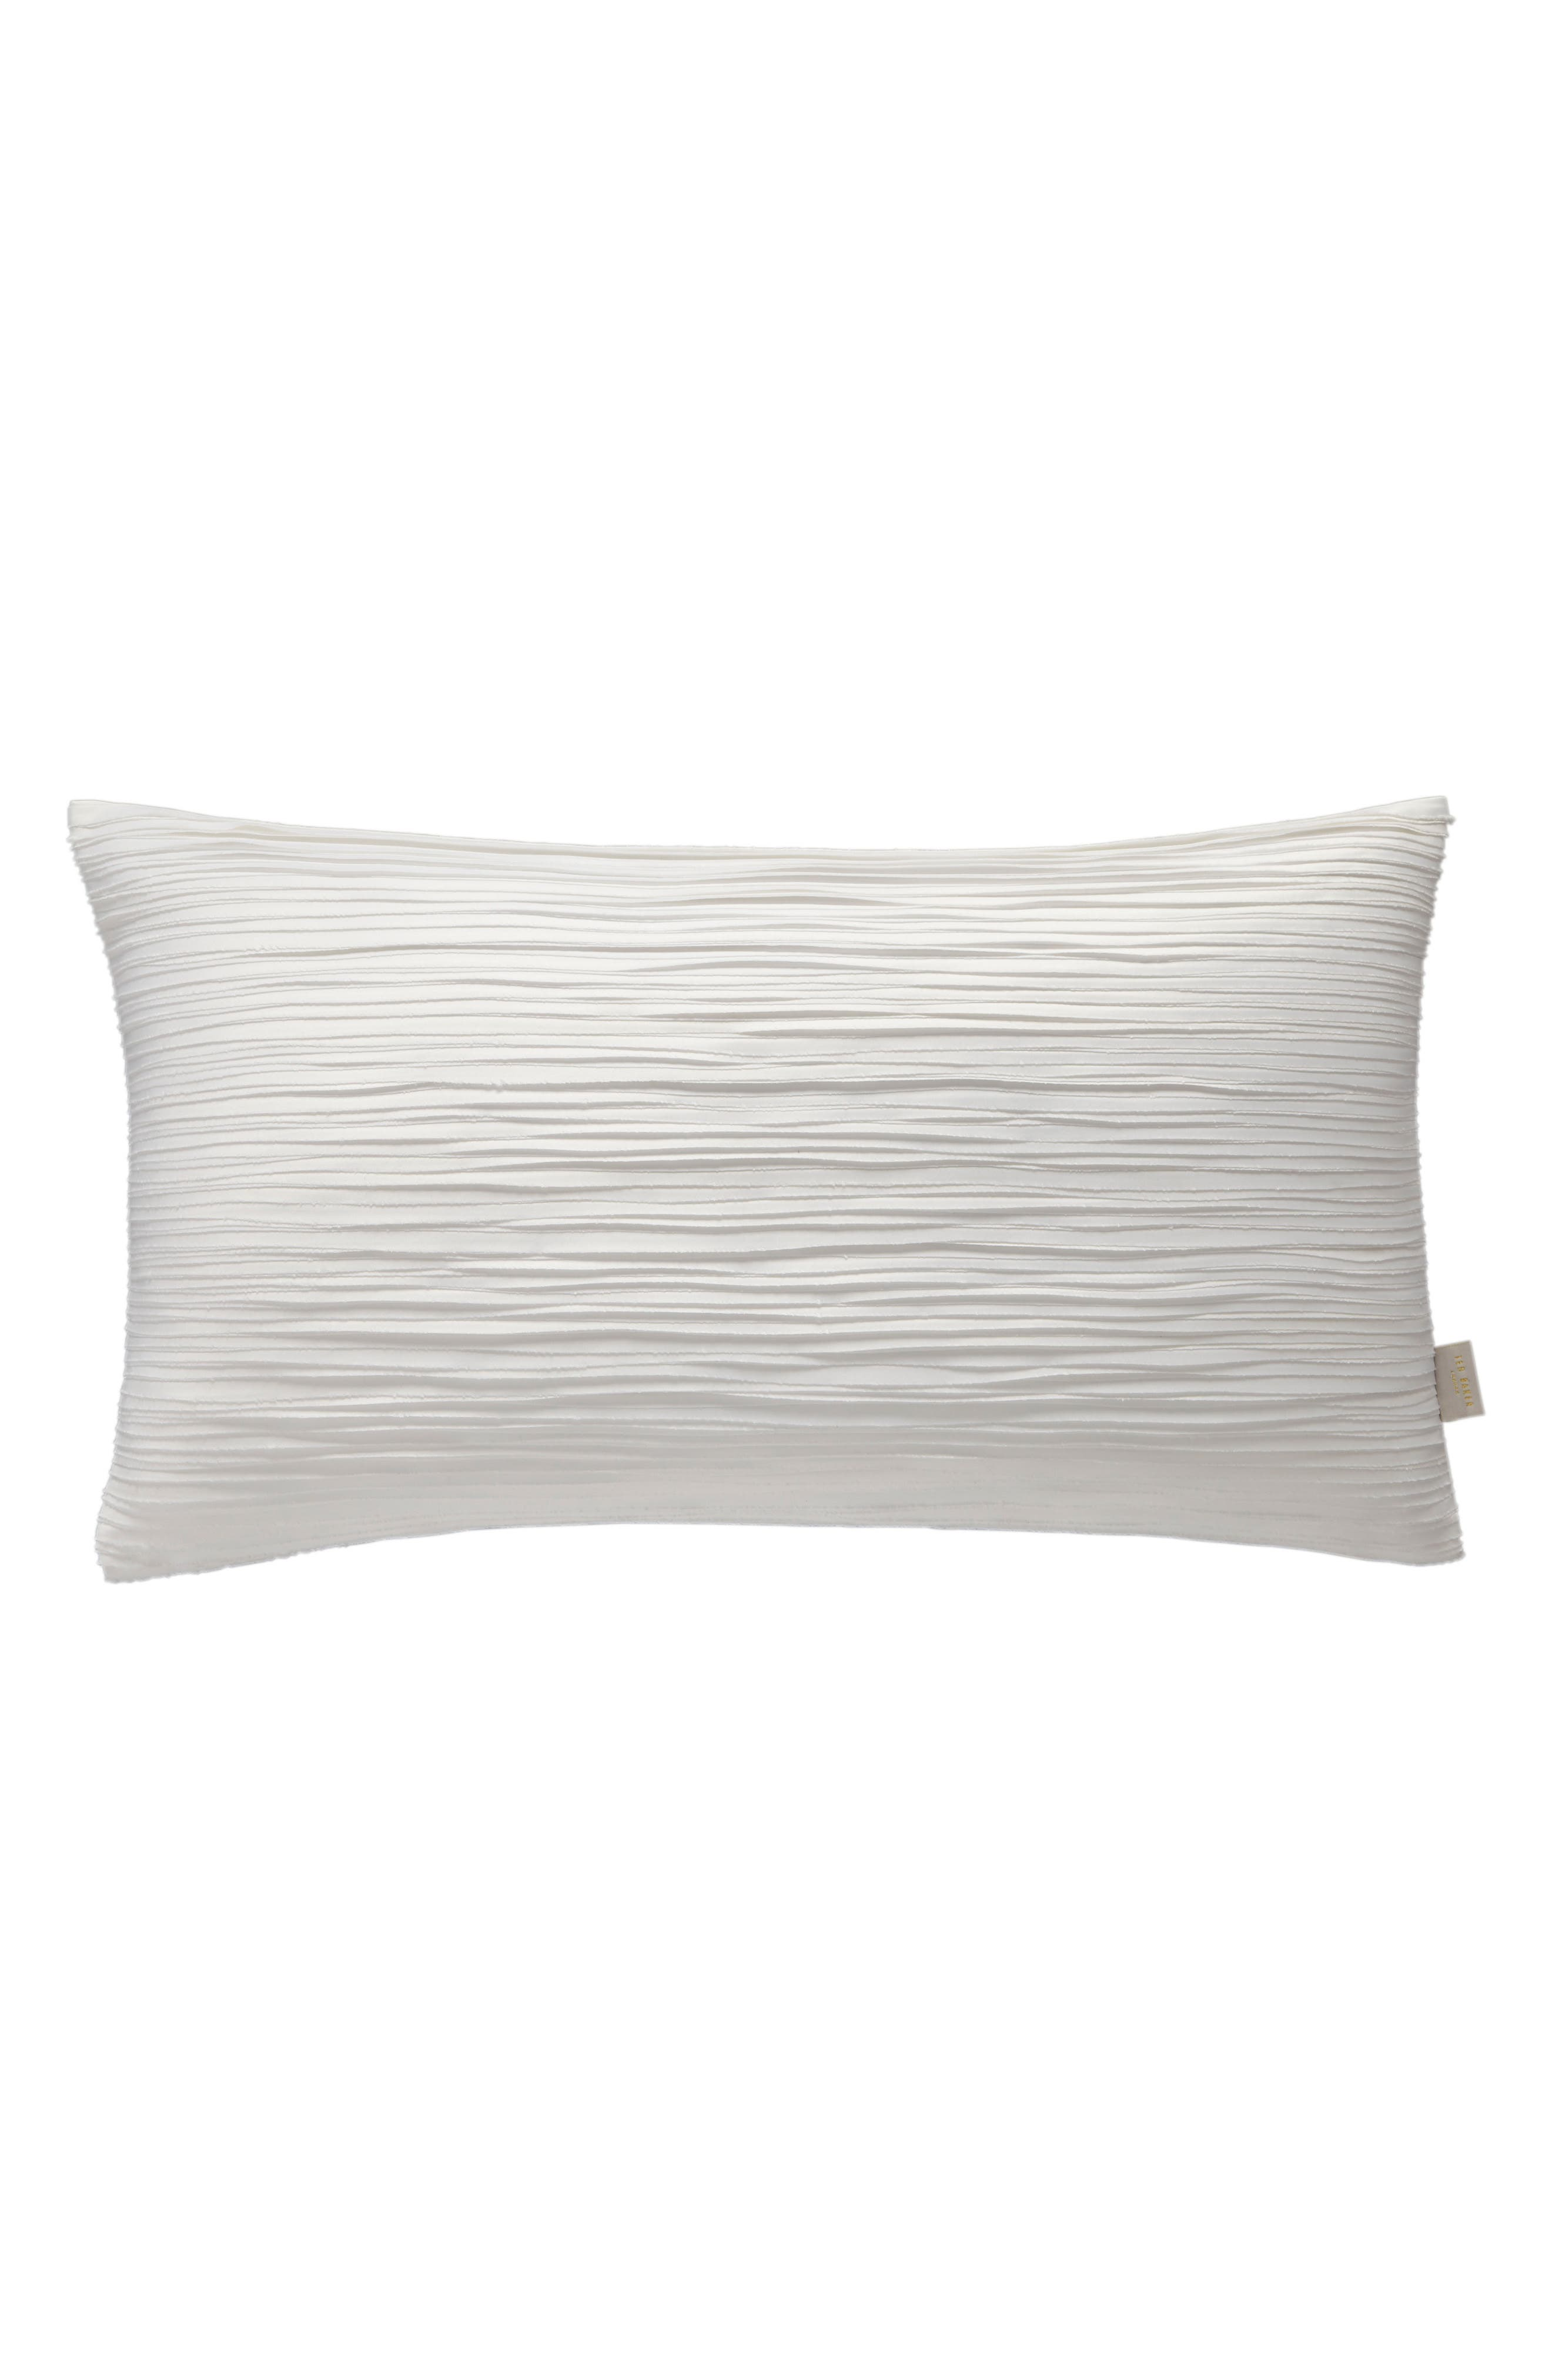 Ruched Accent Pillow,                             Main thumbnail 1, color,                             WHITE